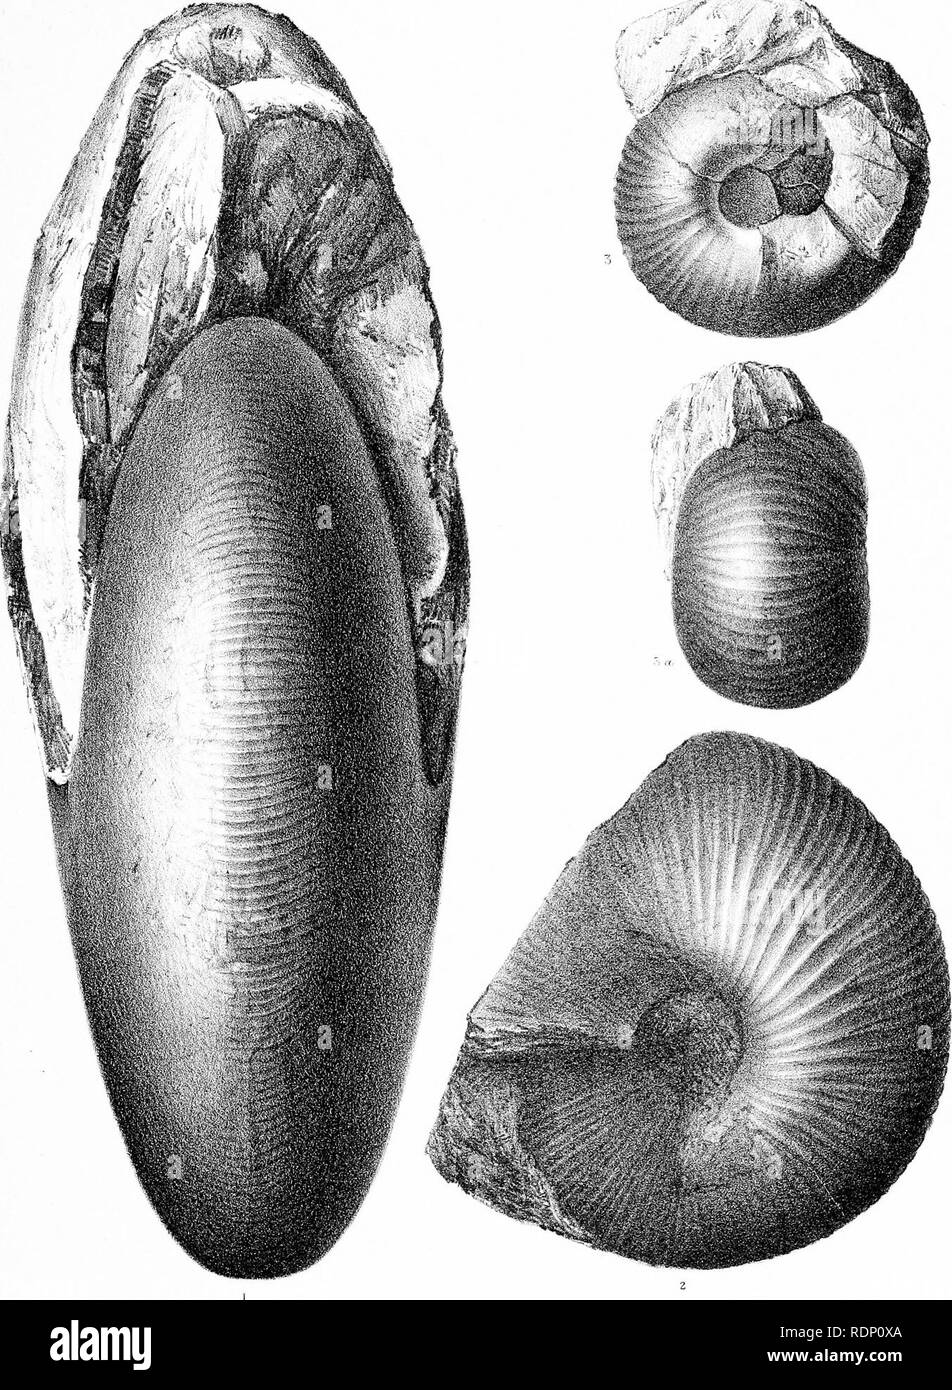 . Fauna of Baluchistan and N. W. frontier of India. Vol I. The Jurassic fauna. Paleontology; Paleontology; Paleontology. JURASSIC FOSSILS OF BALUCHISTAN. Oeolog'ical Survey of India. PI. ,iX. Frmled at llie Creol. S-or'/, Office Kali Dhan Chandra Del. &Lith.. Please note that these images are extracted from scanned page images that may have been digitally enhanced for readability - coloration and appearance of these illustrations may not perfectly resemble the original work.. Noetling, Fritz, b. 1857. Calcutta, Geological Survey Office; [etc. , etc. ] - Stock Image